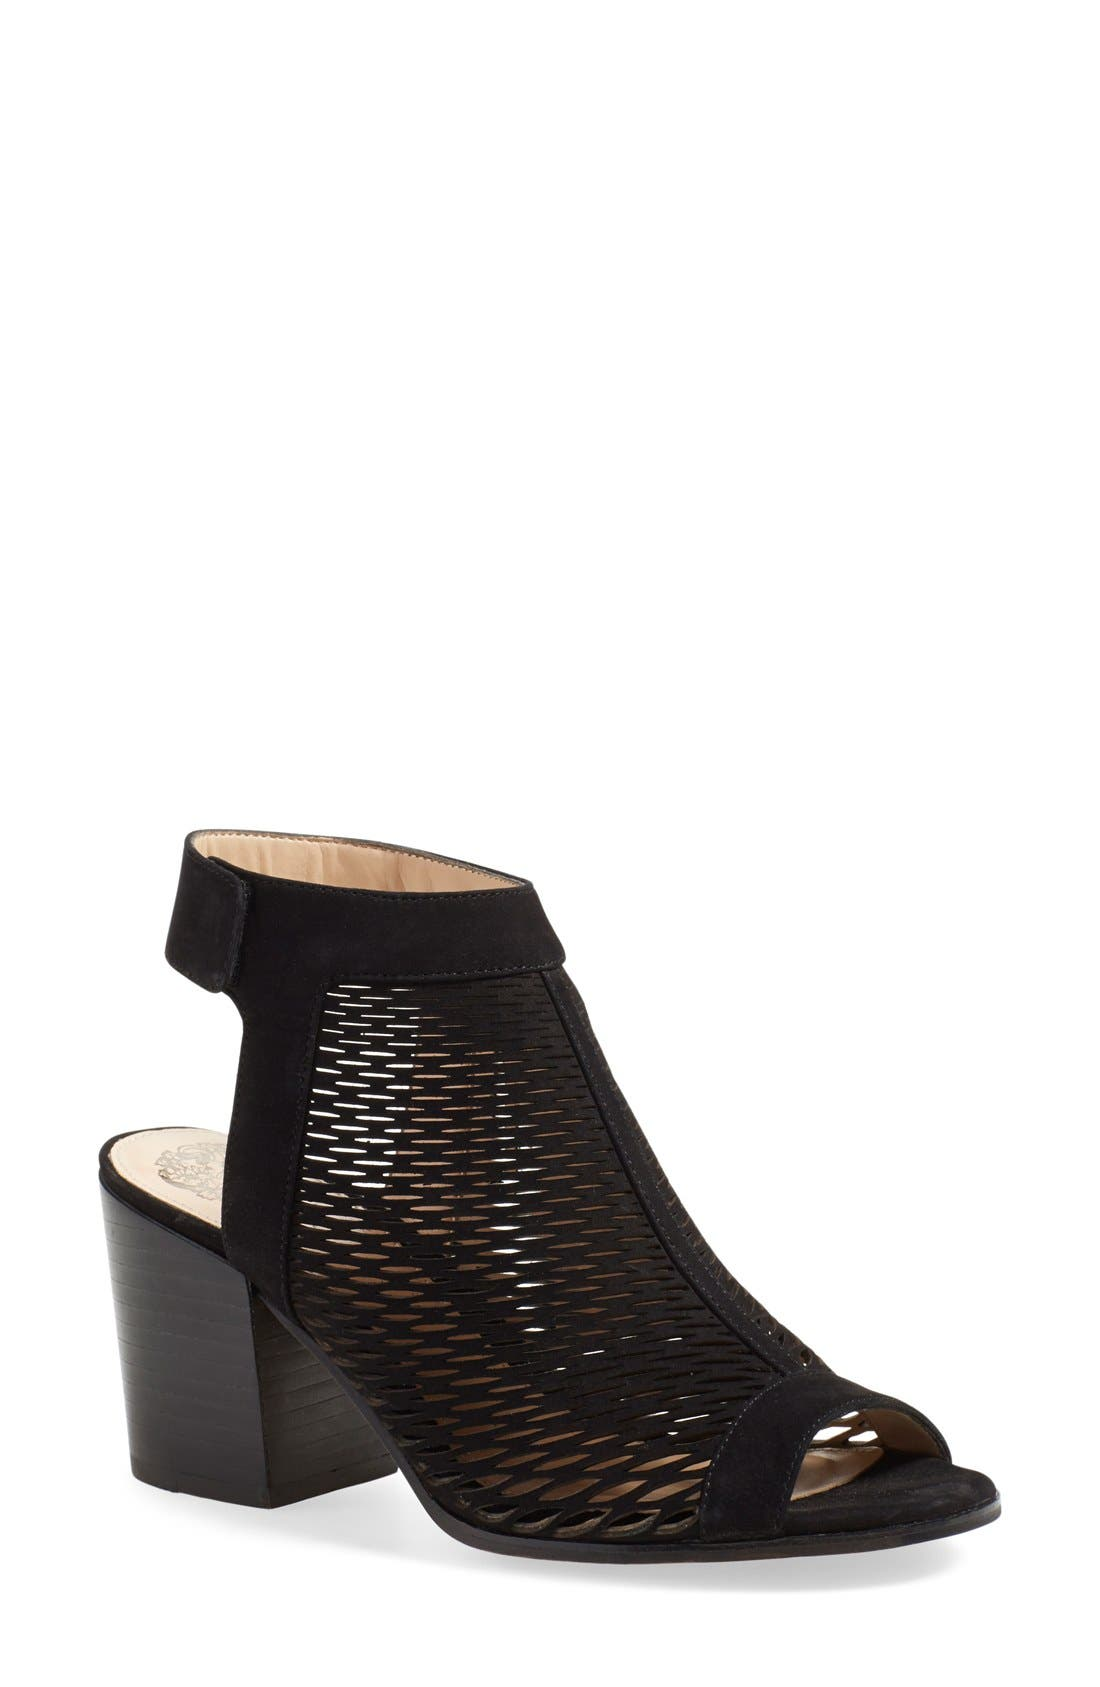 'Lavette' Perforated Peep Toe Bootie,                             Main thumbnail 1, color,                             001